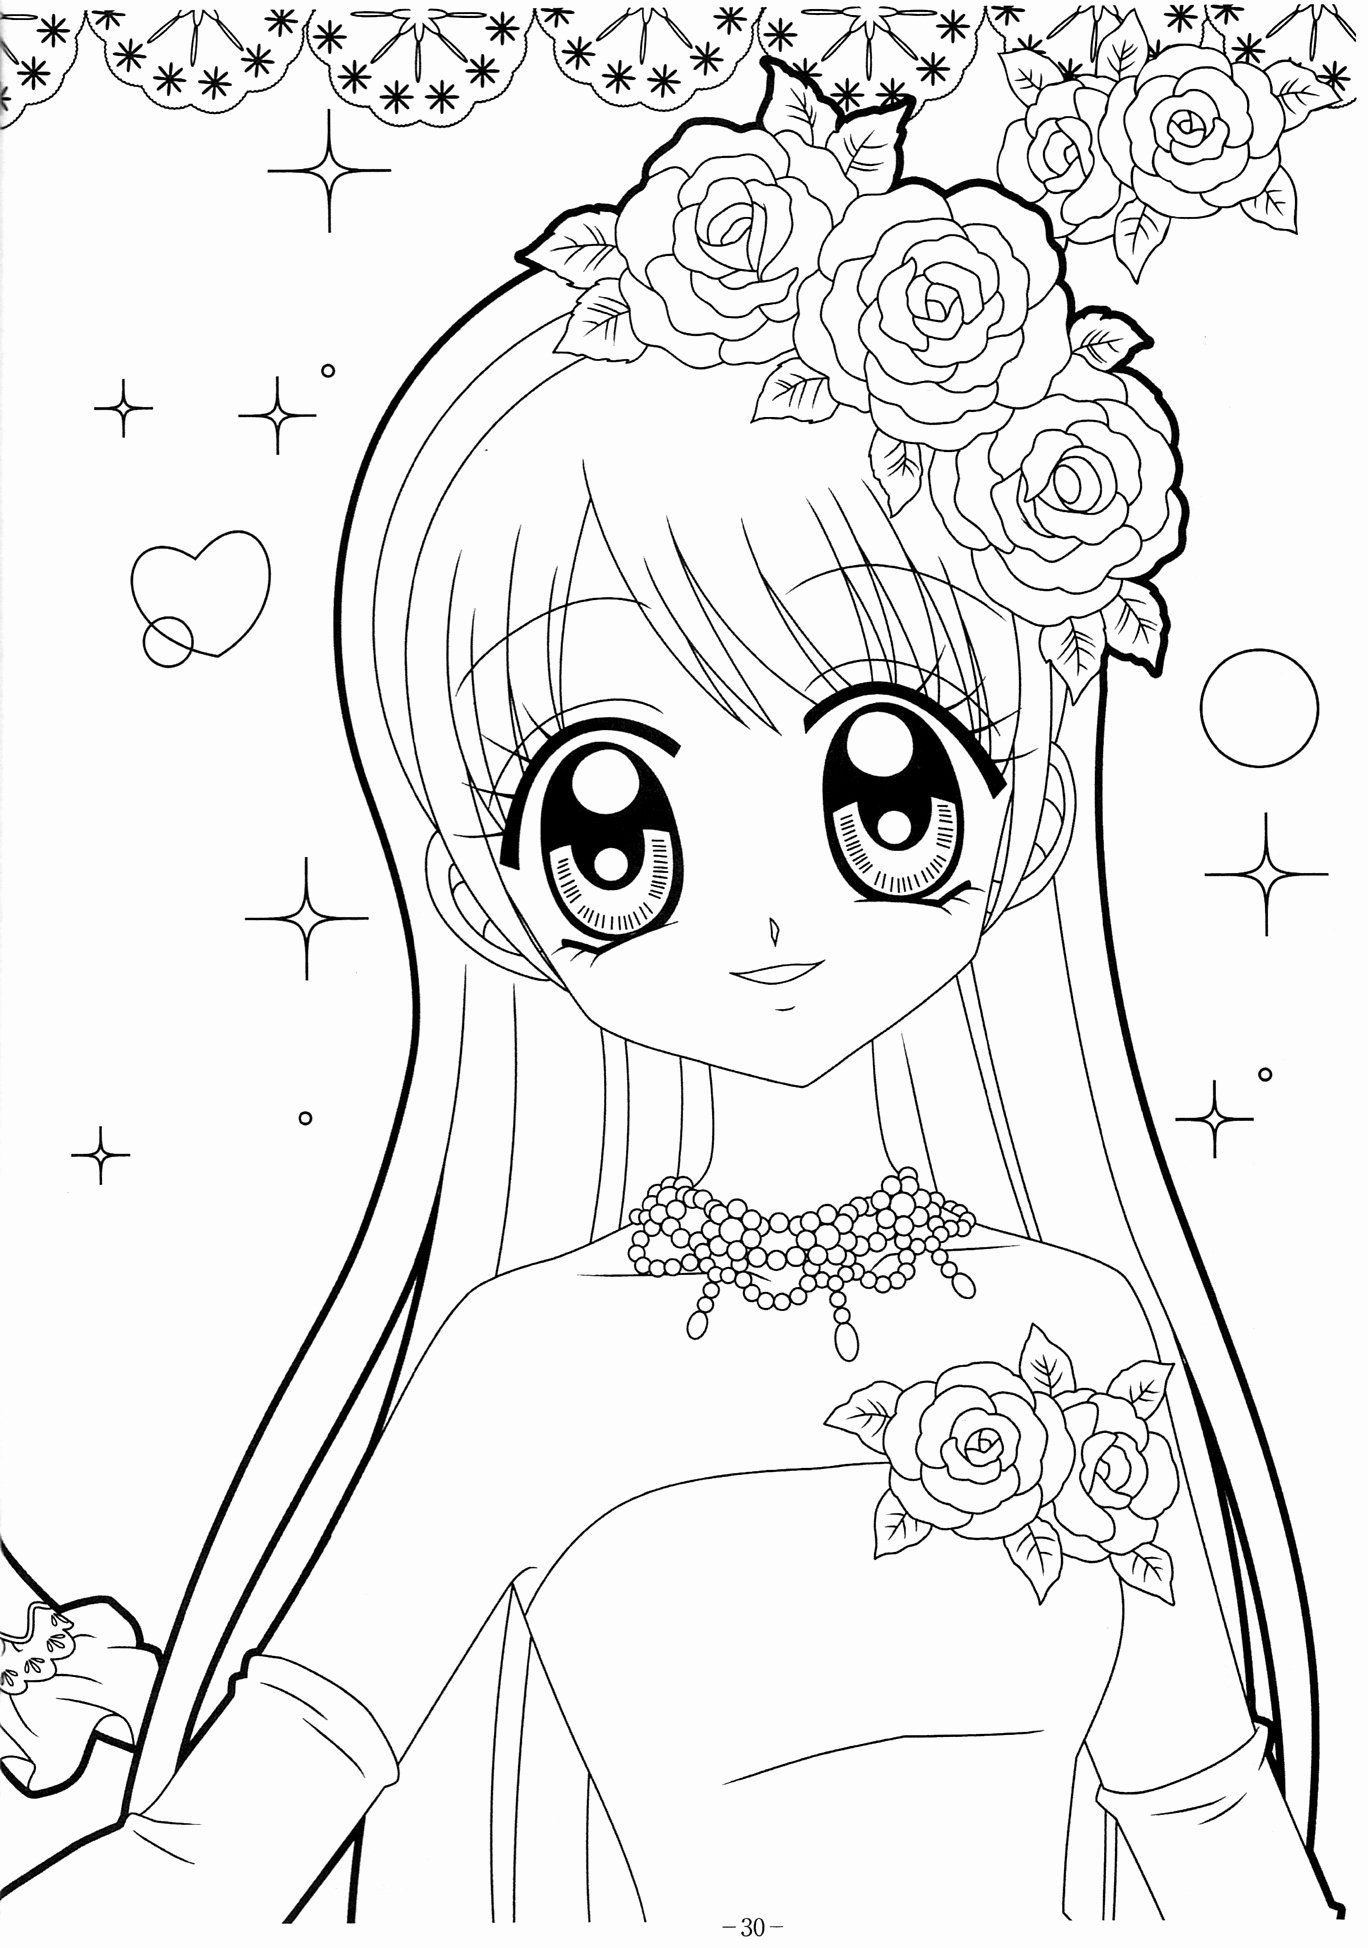 Anime Coloring Books Lovely 1000 Images About Coloring Pages Shojo Anime On Pinterest In 2020 Mermaid Coloring Pages Animal Coloring Pages Coloring Pages For Girls